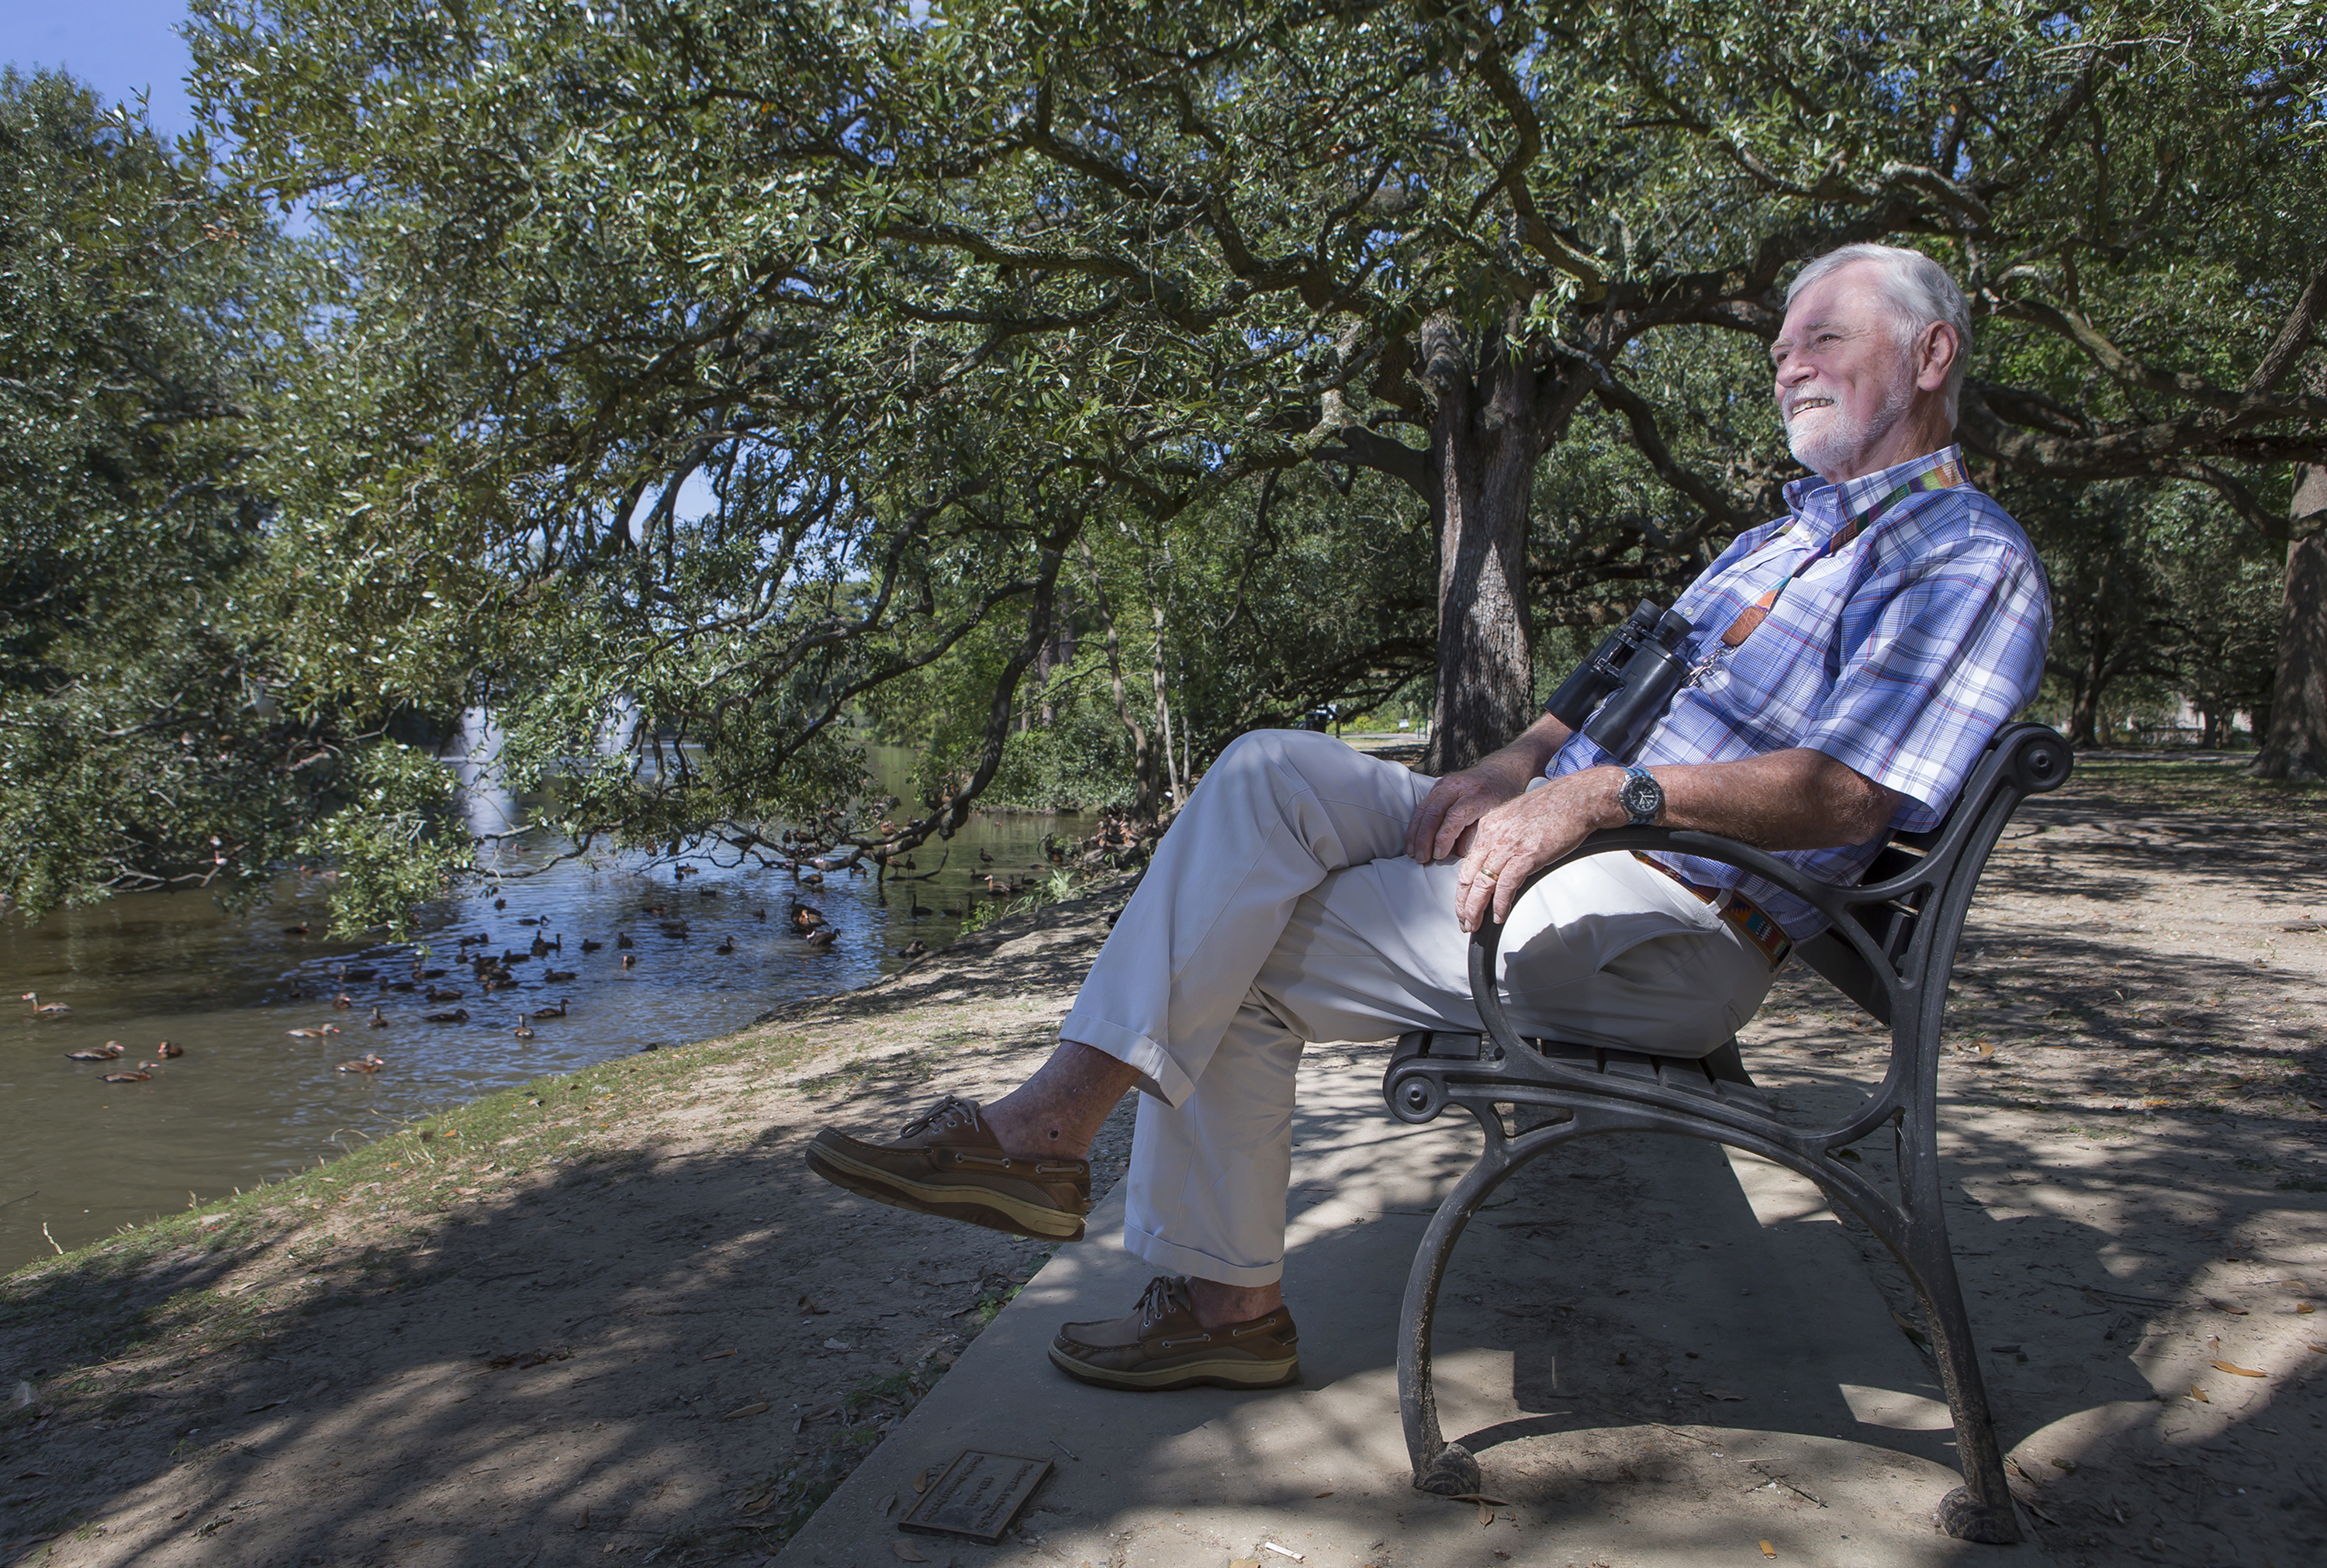 Environmentalist Bob Thomas relaxes at Audubon Park in New Orleans on Oct. 3, 2016.